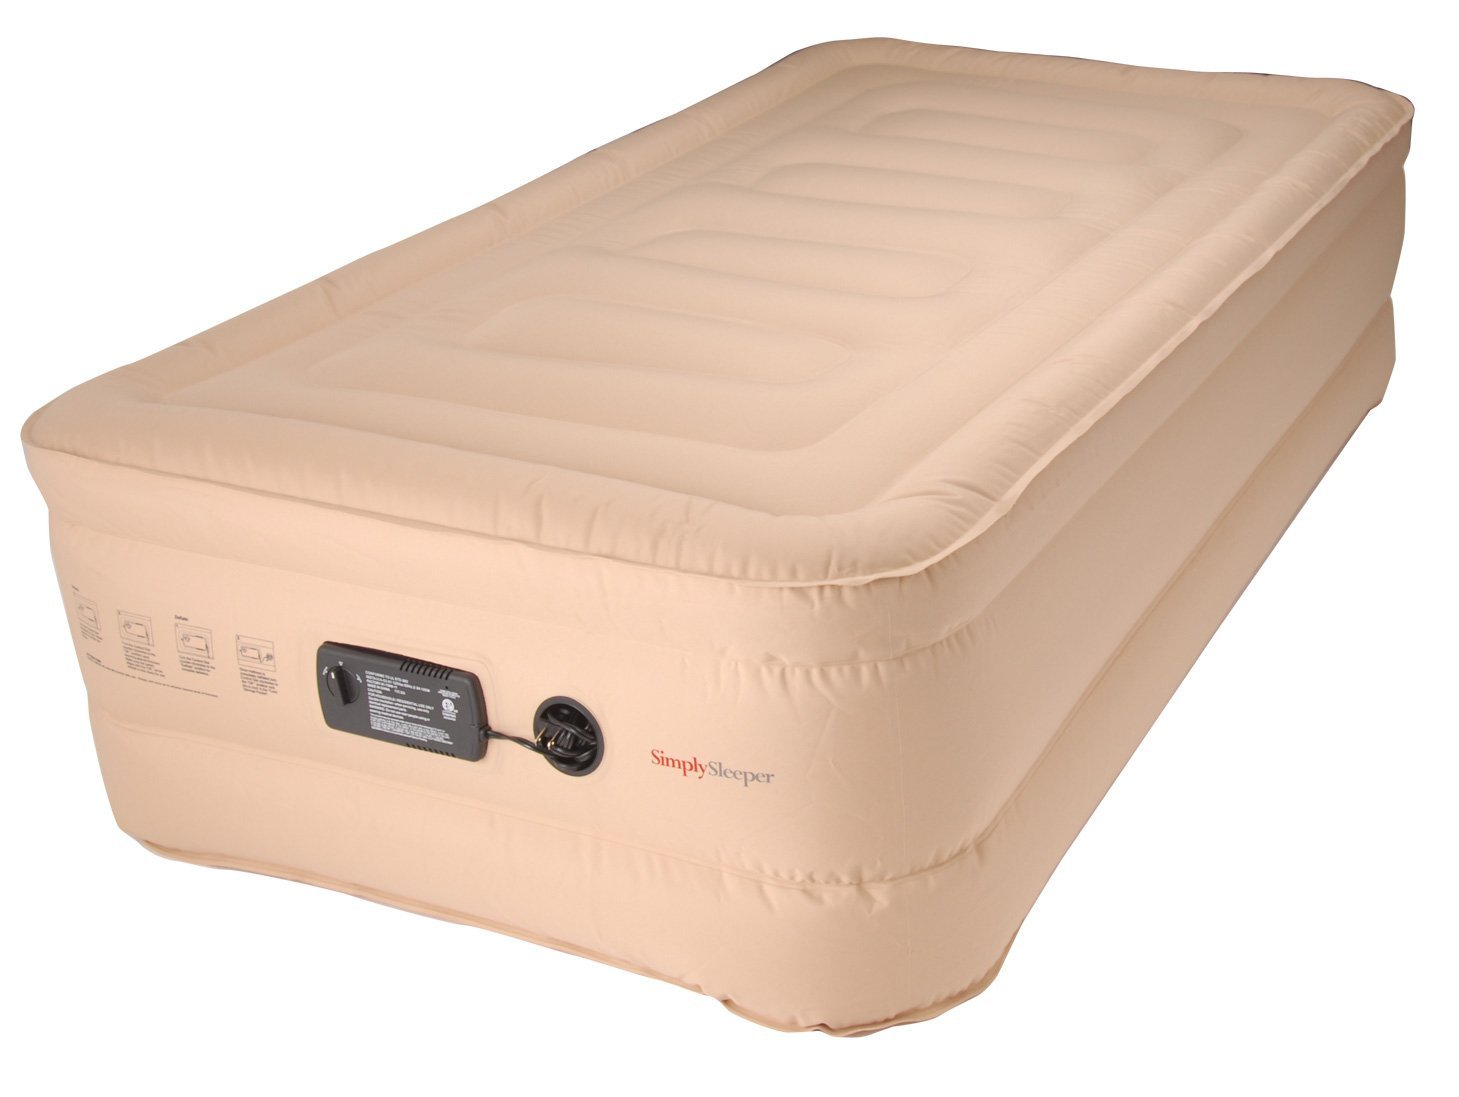 SimplySleeper air mattress